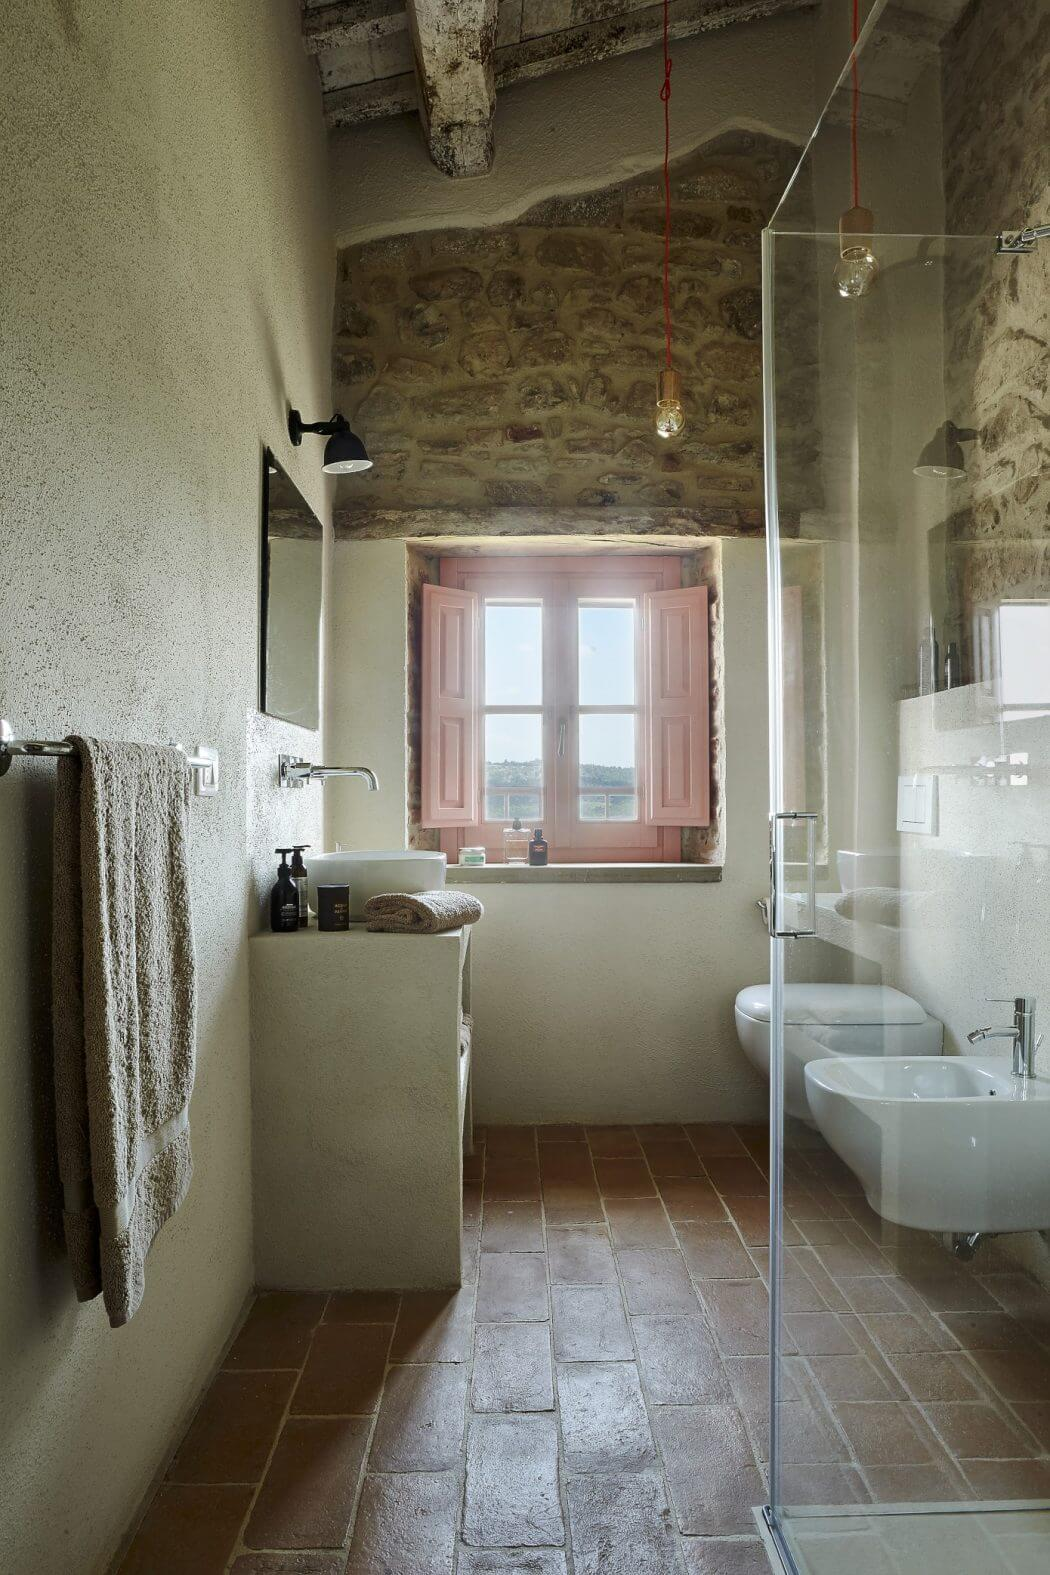 Historic farmhouse by special umbria homeadore pin save email dailygadgetfo Choice Image